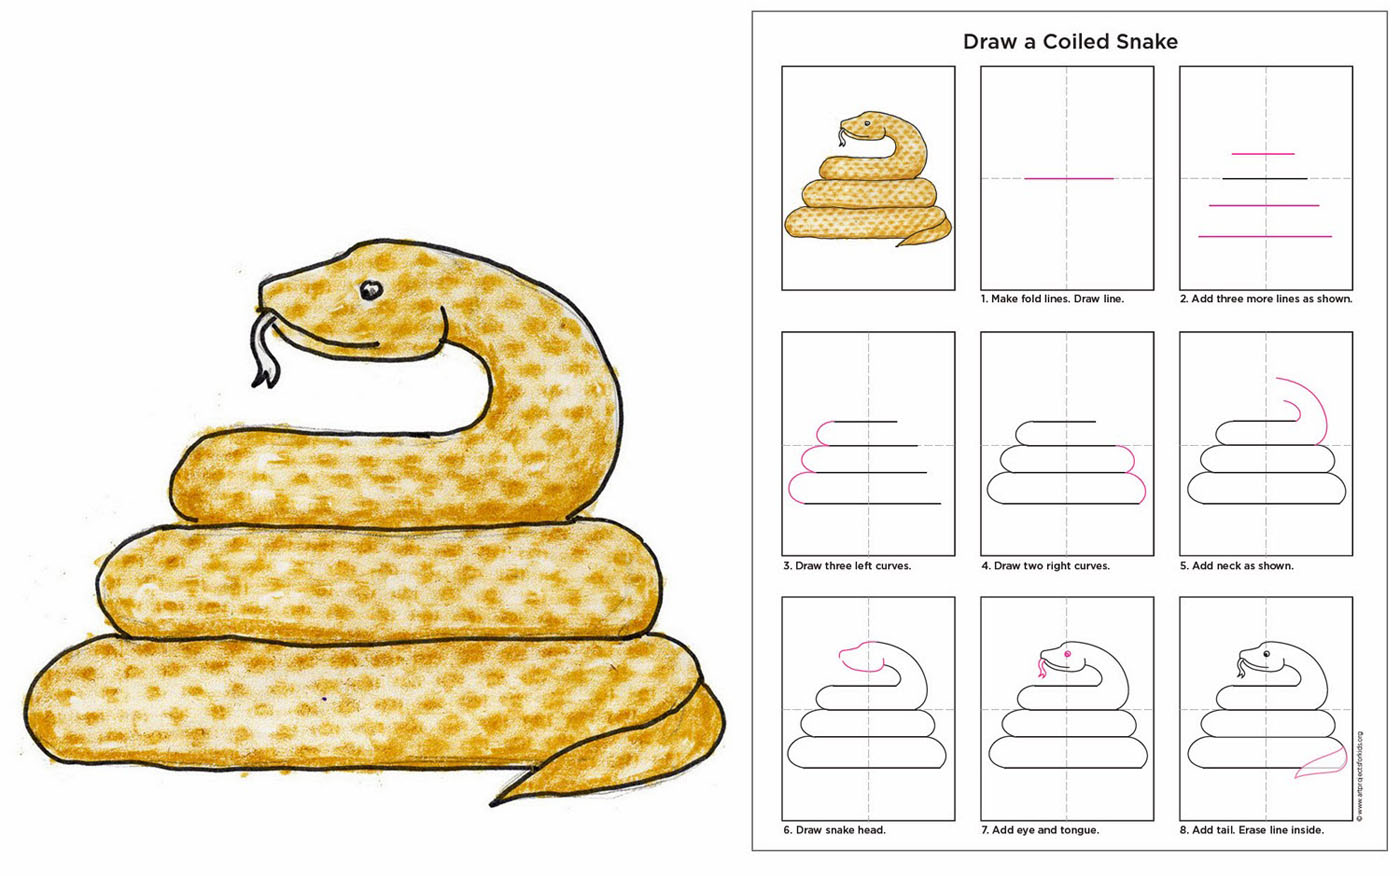 coiled rattlesnake drawing 53 coiled rattlesnake drawing at getdrawings com free for personal